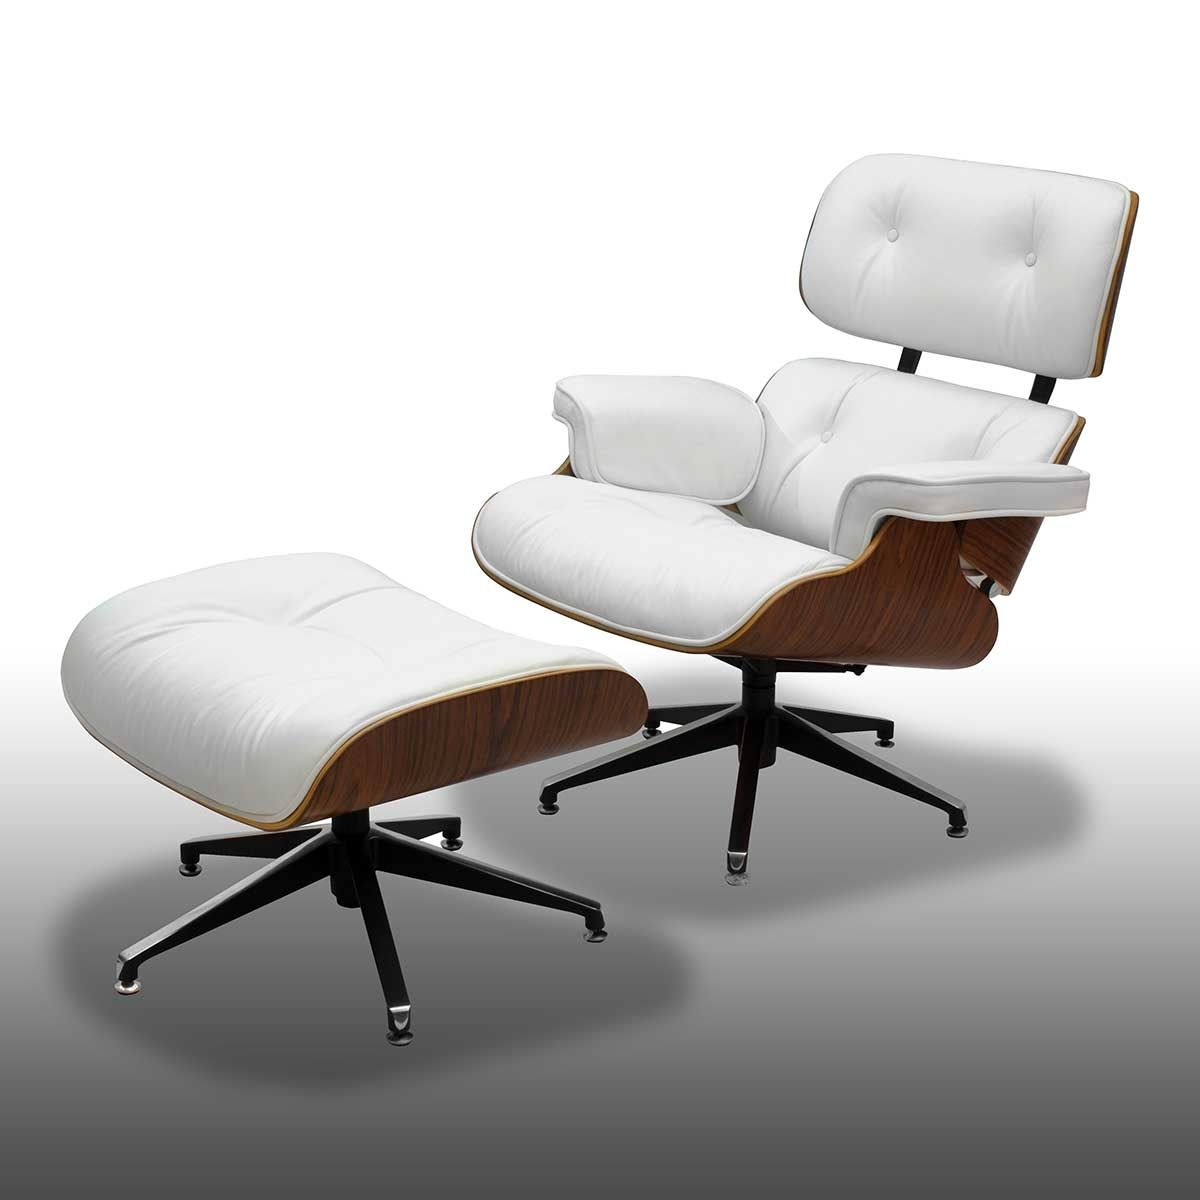 lounge chair and ottoman charles eames herman miller design charles eames pinterest. Black Bedroom Furniture Sets. Home Design Ideas